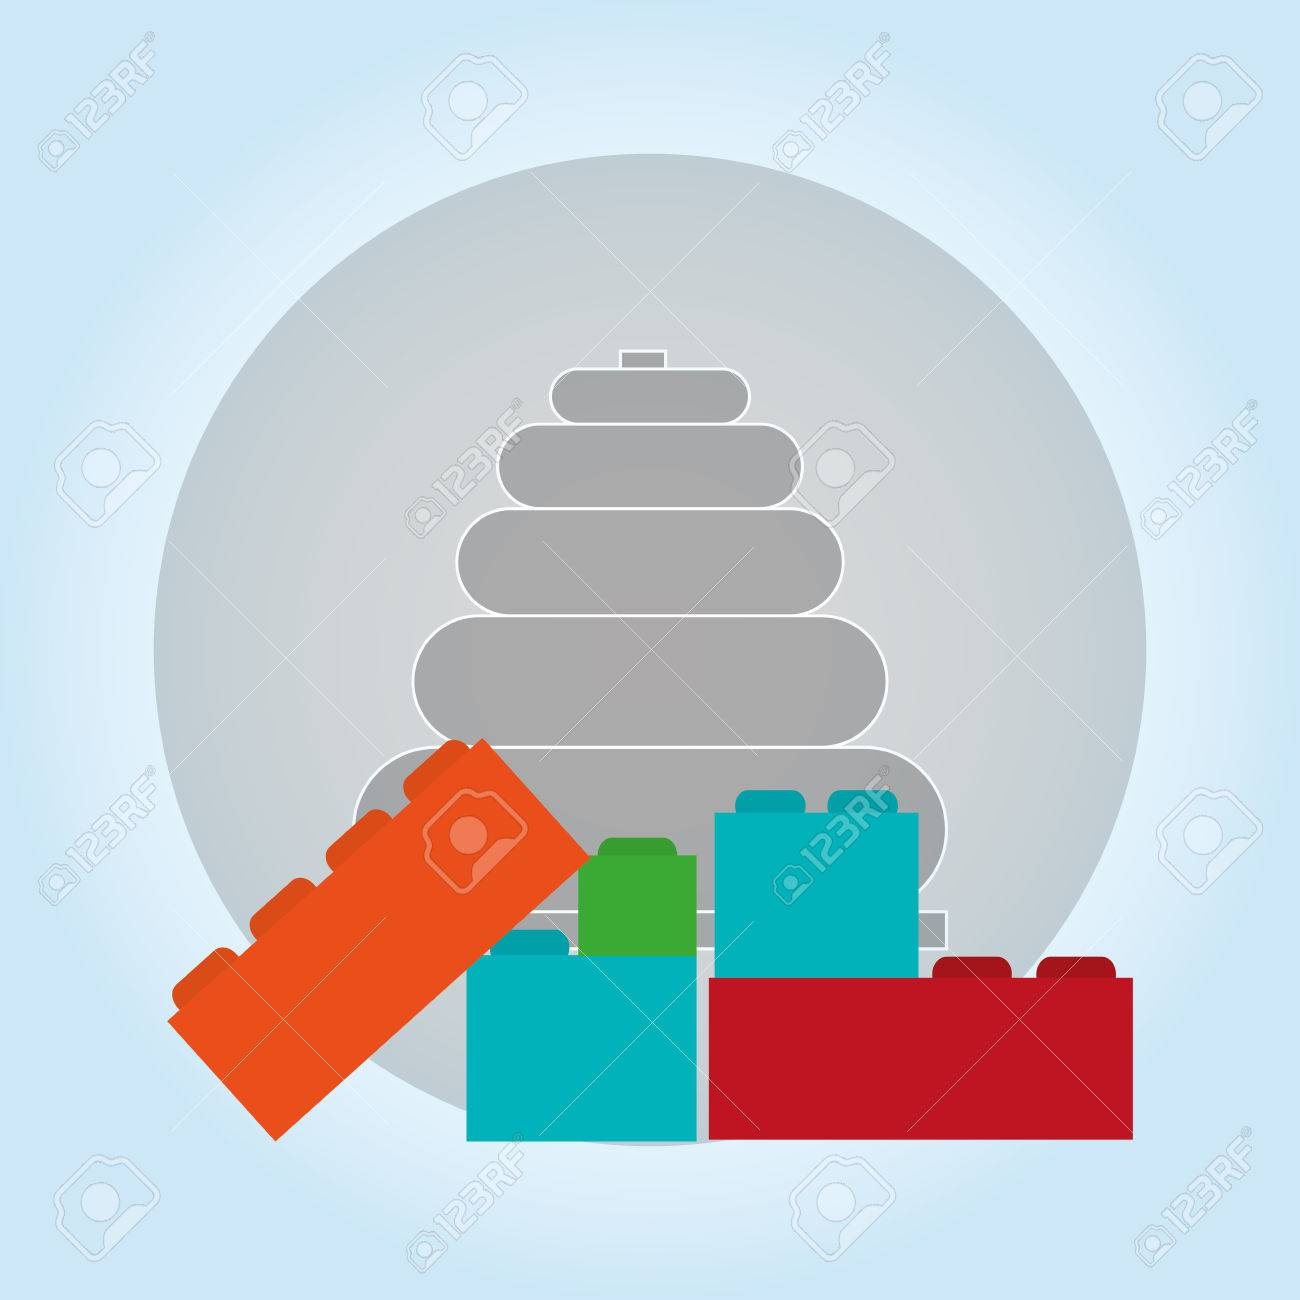 Toy concept with icon design, vector illustration 10 eps graphic. - 56730525